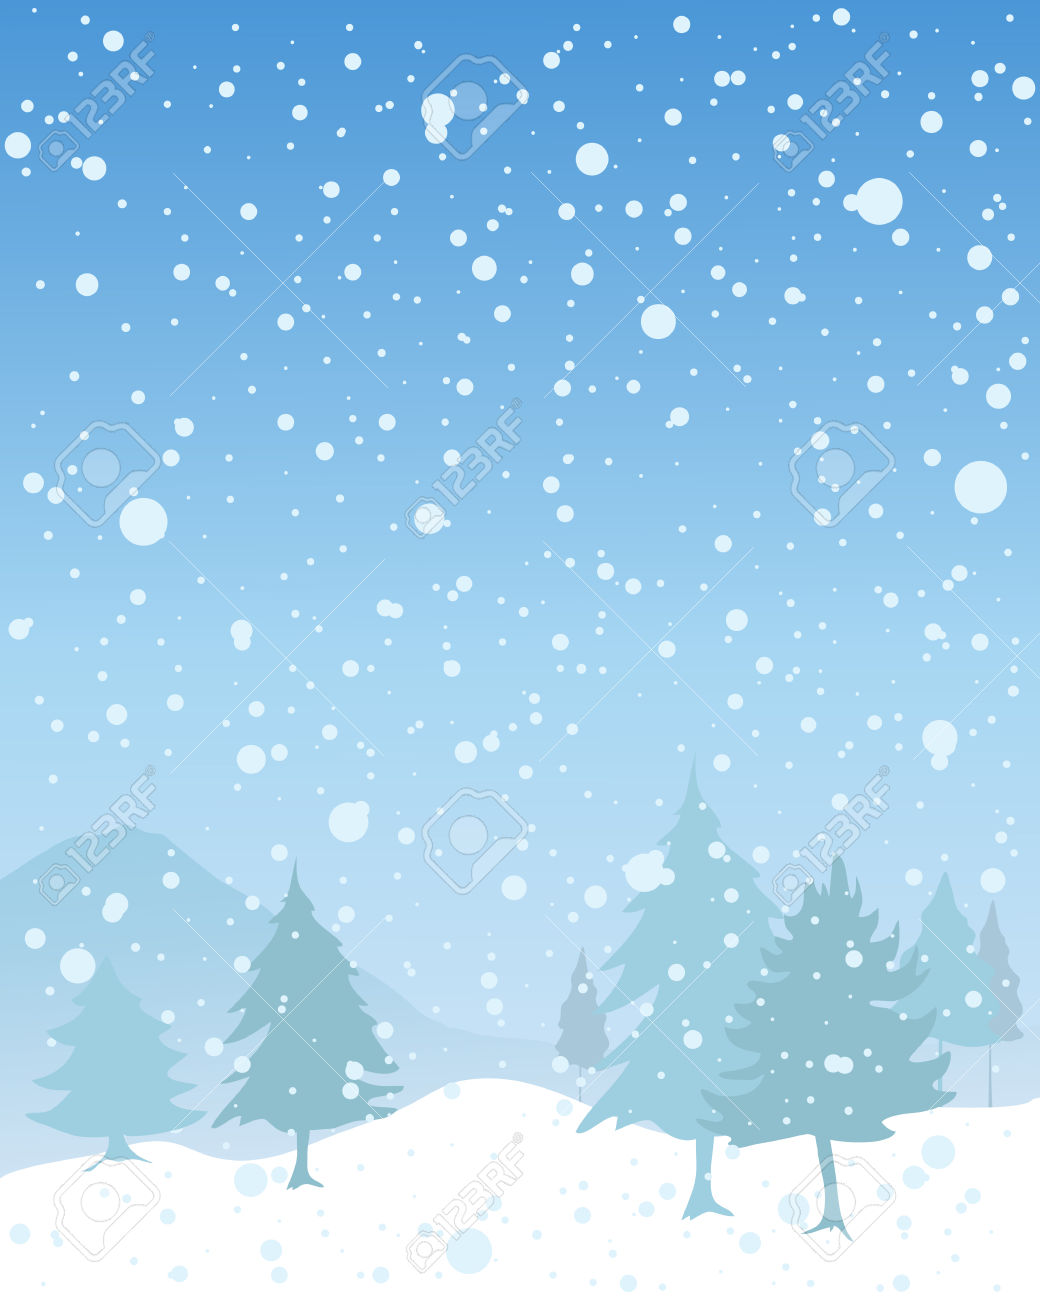 An Illustration Of A Snowy Seasonal Christmas Landscape With.